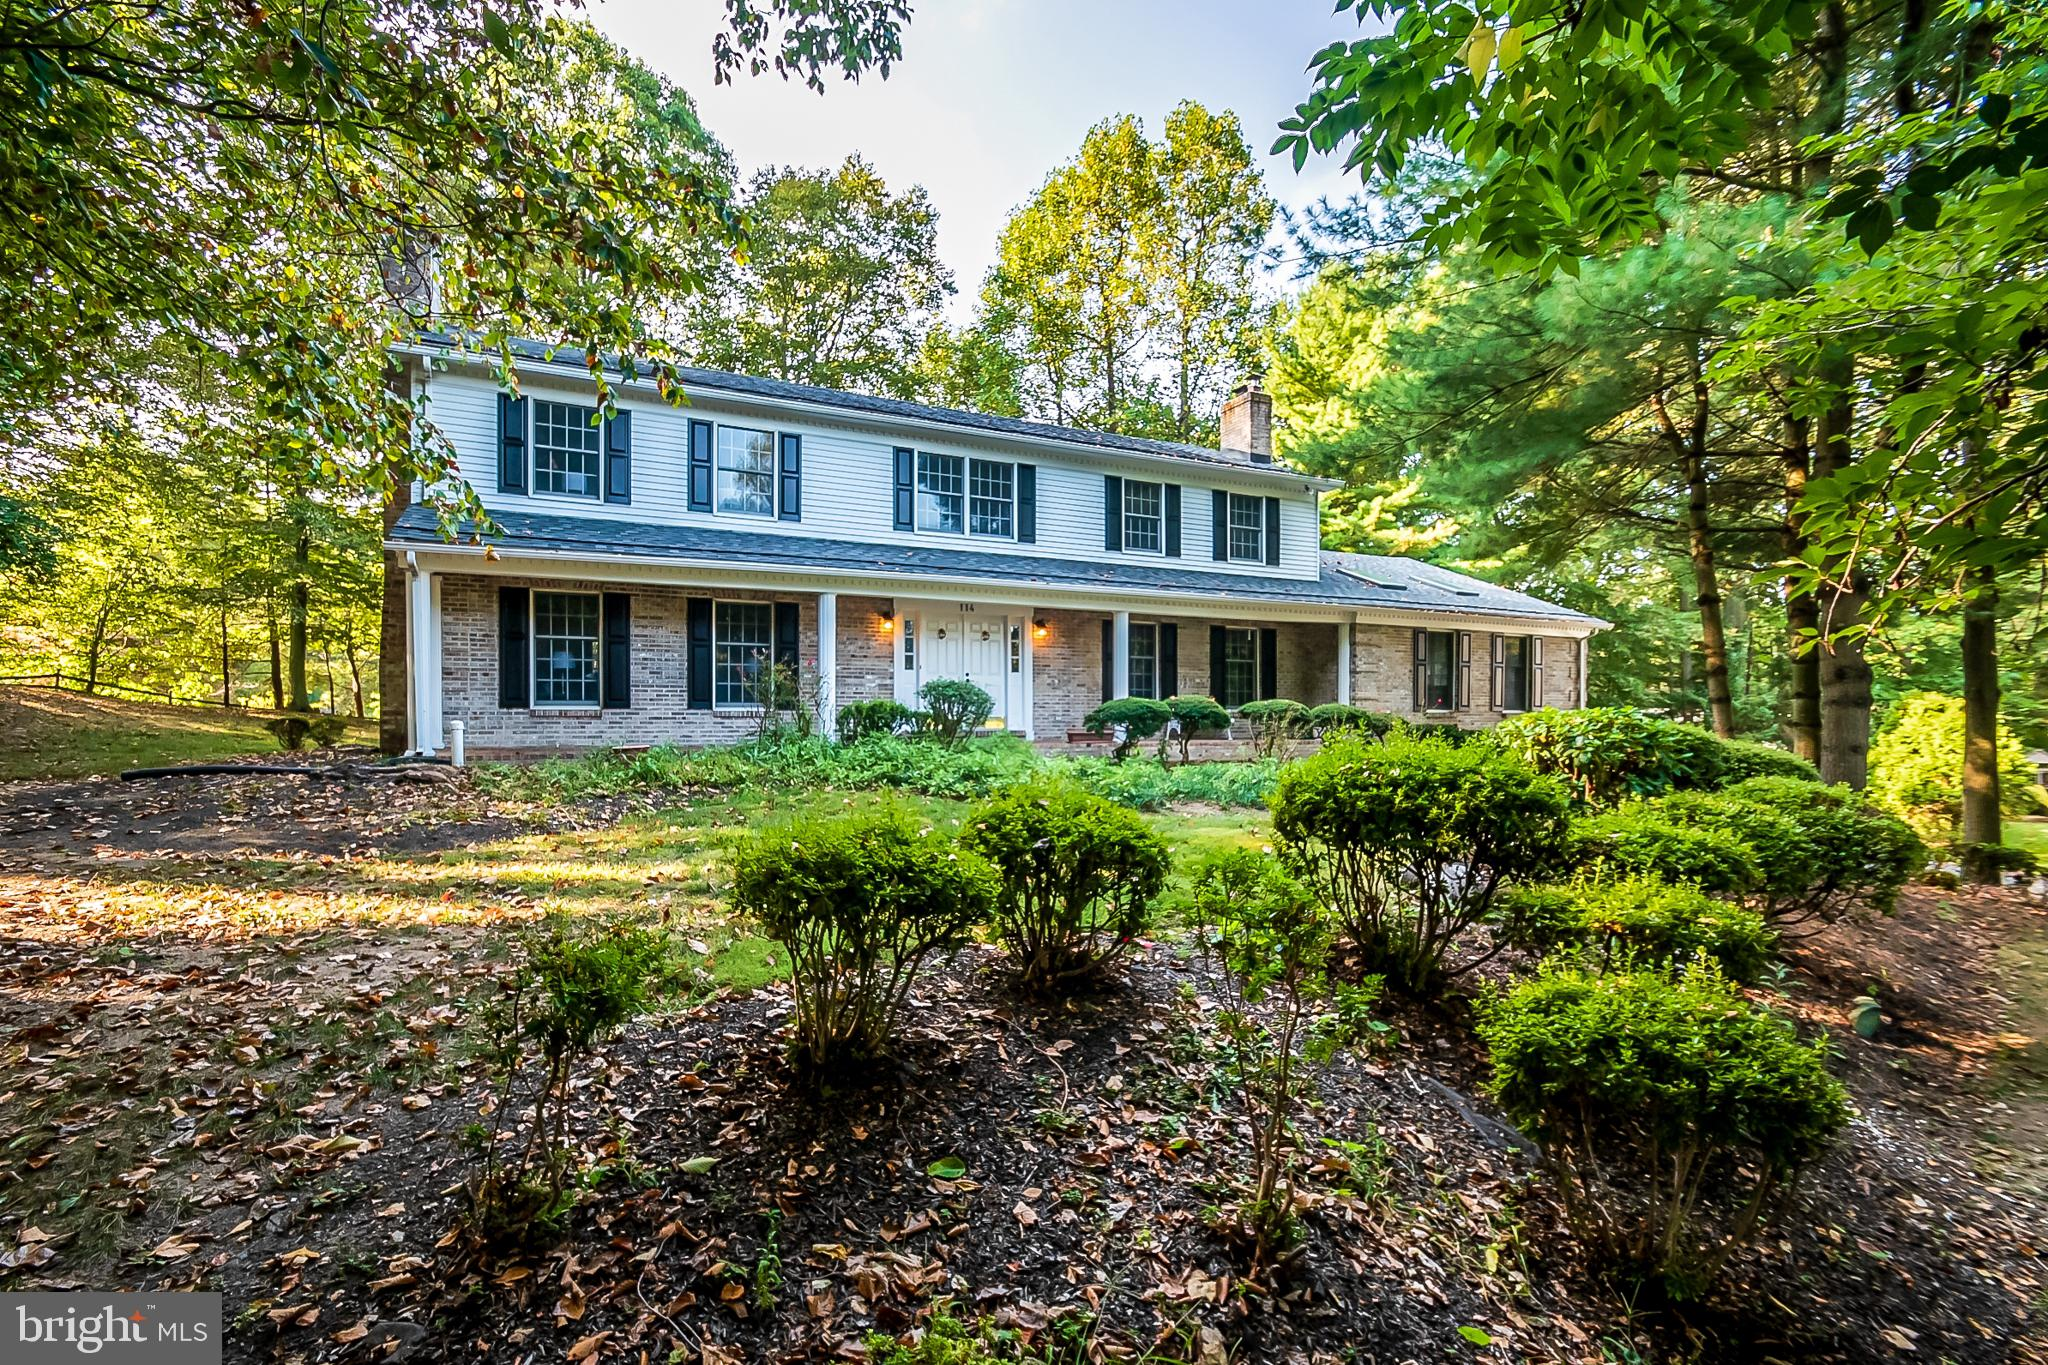 114 METTENET COURT, HOCKESSIN, DE 19707